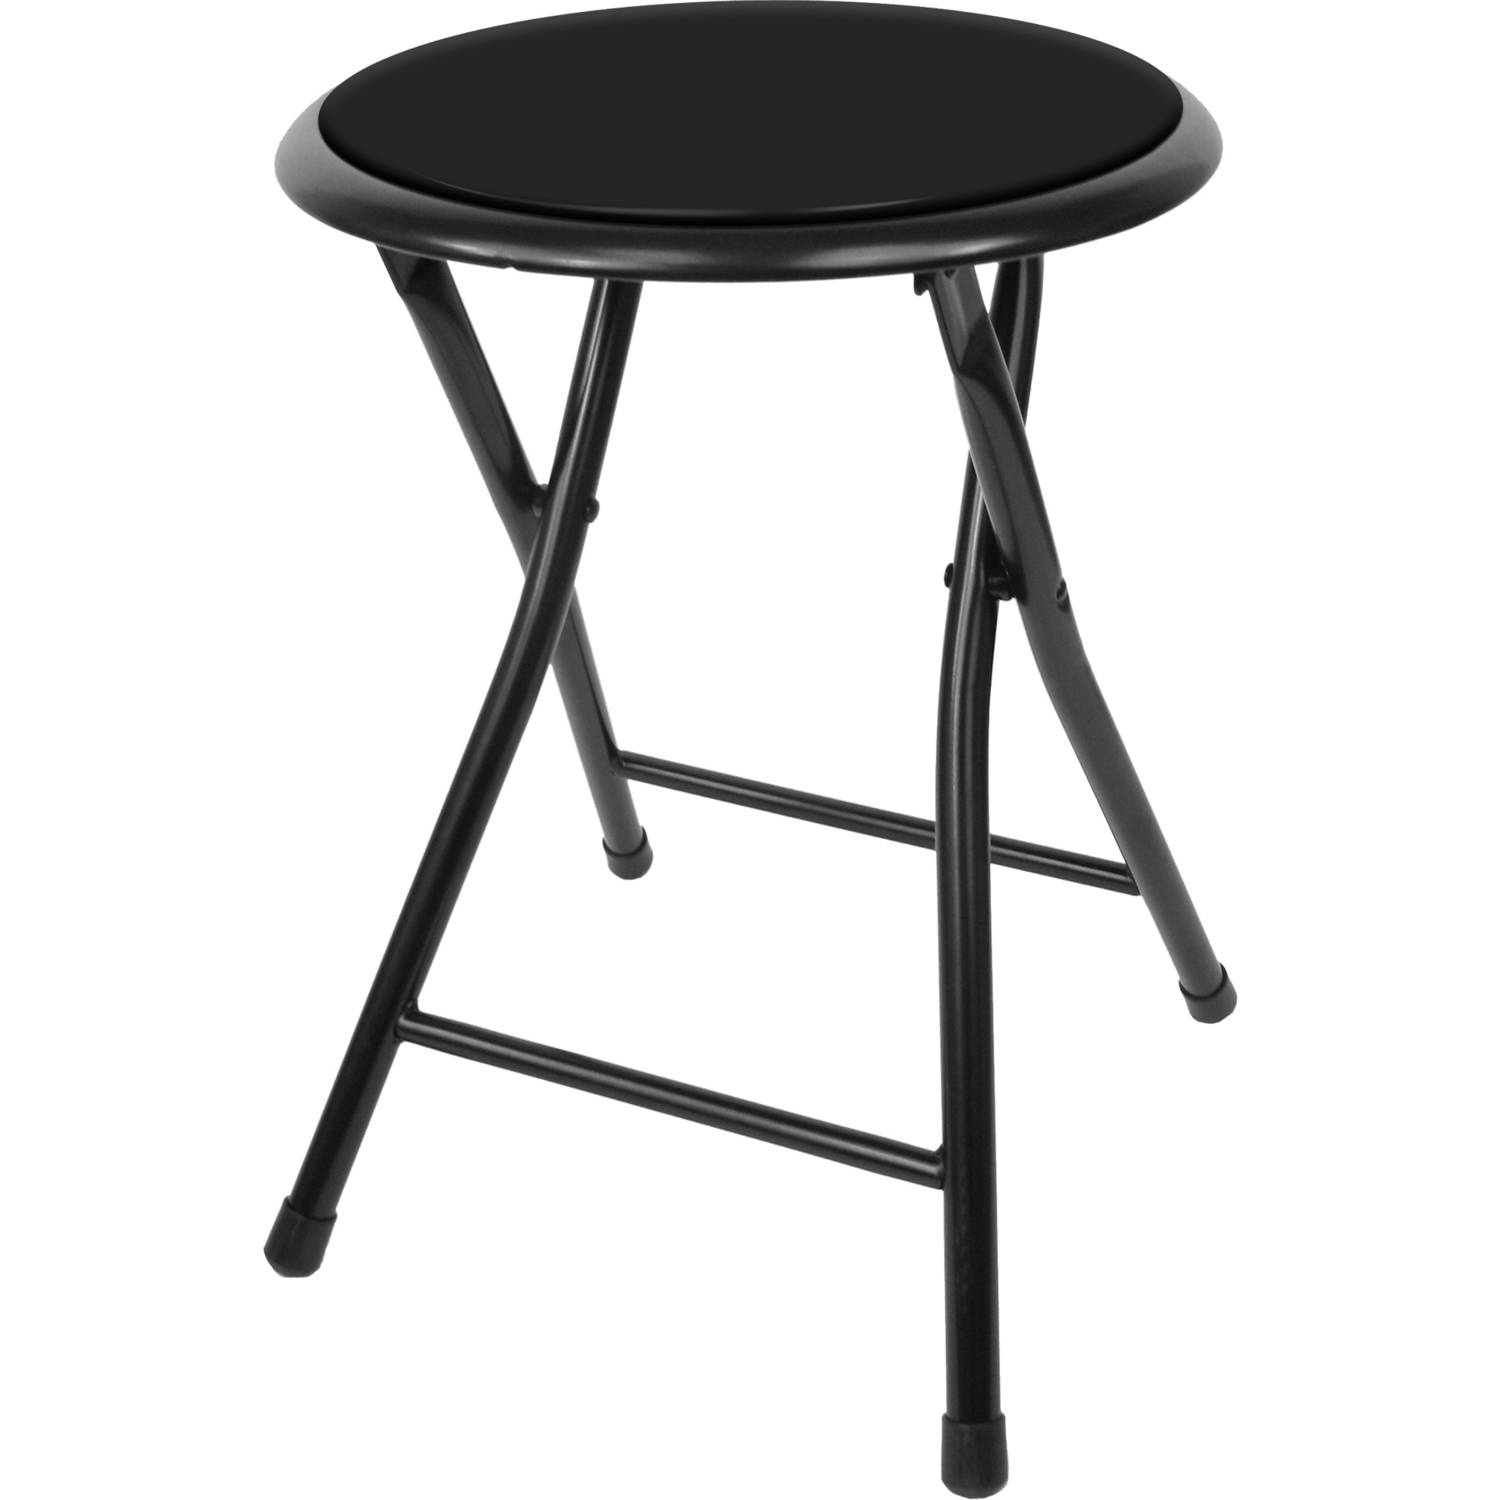 Folding Stool u2013 Heavy Duty 18-Inch Collapsible Padded Round Stool